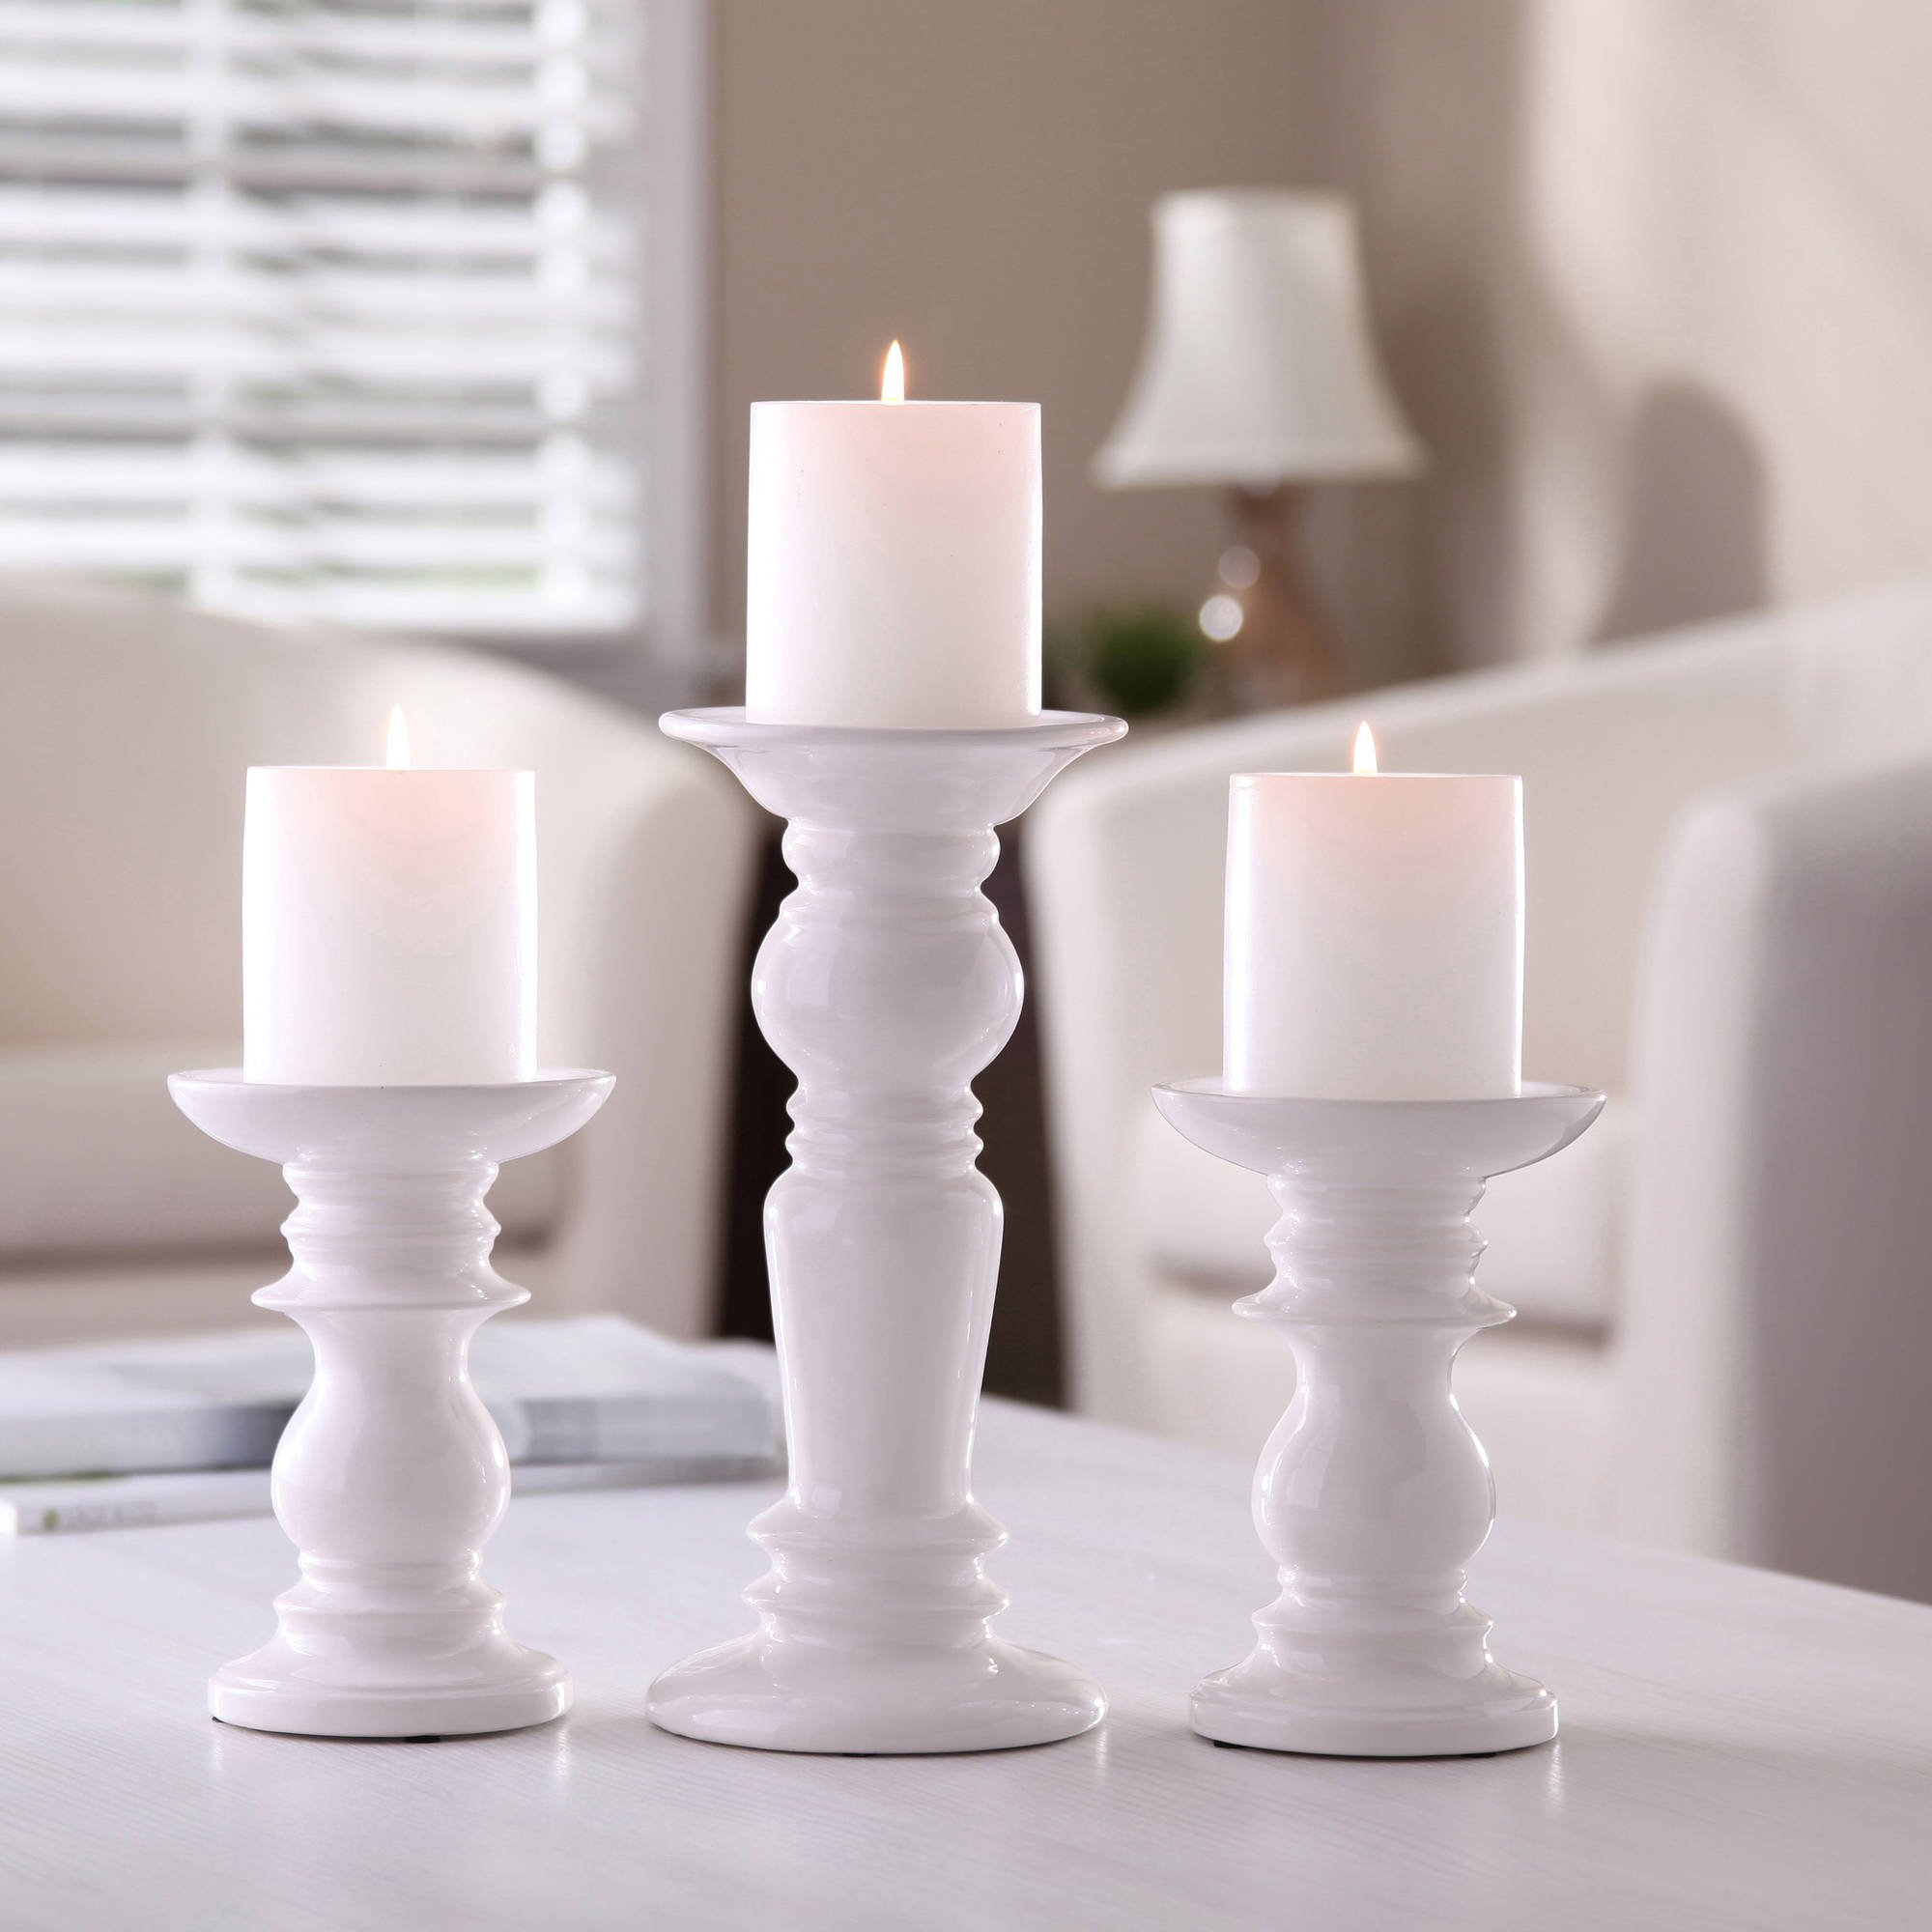 better homes and gardens ceramic pillar candle holders set of   - better homes and gardens ceramic pillar candle holders set of  walmartcom